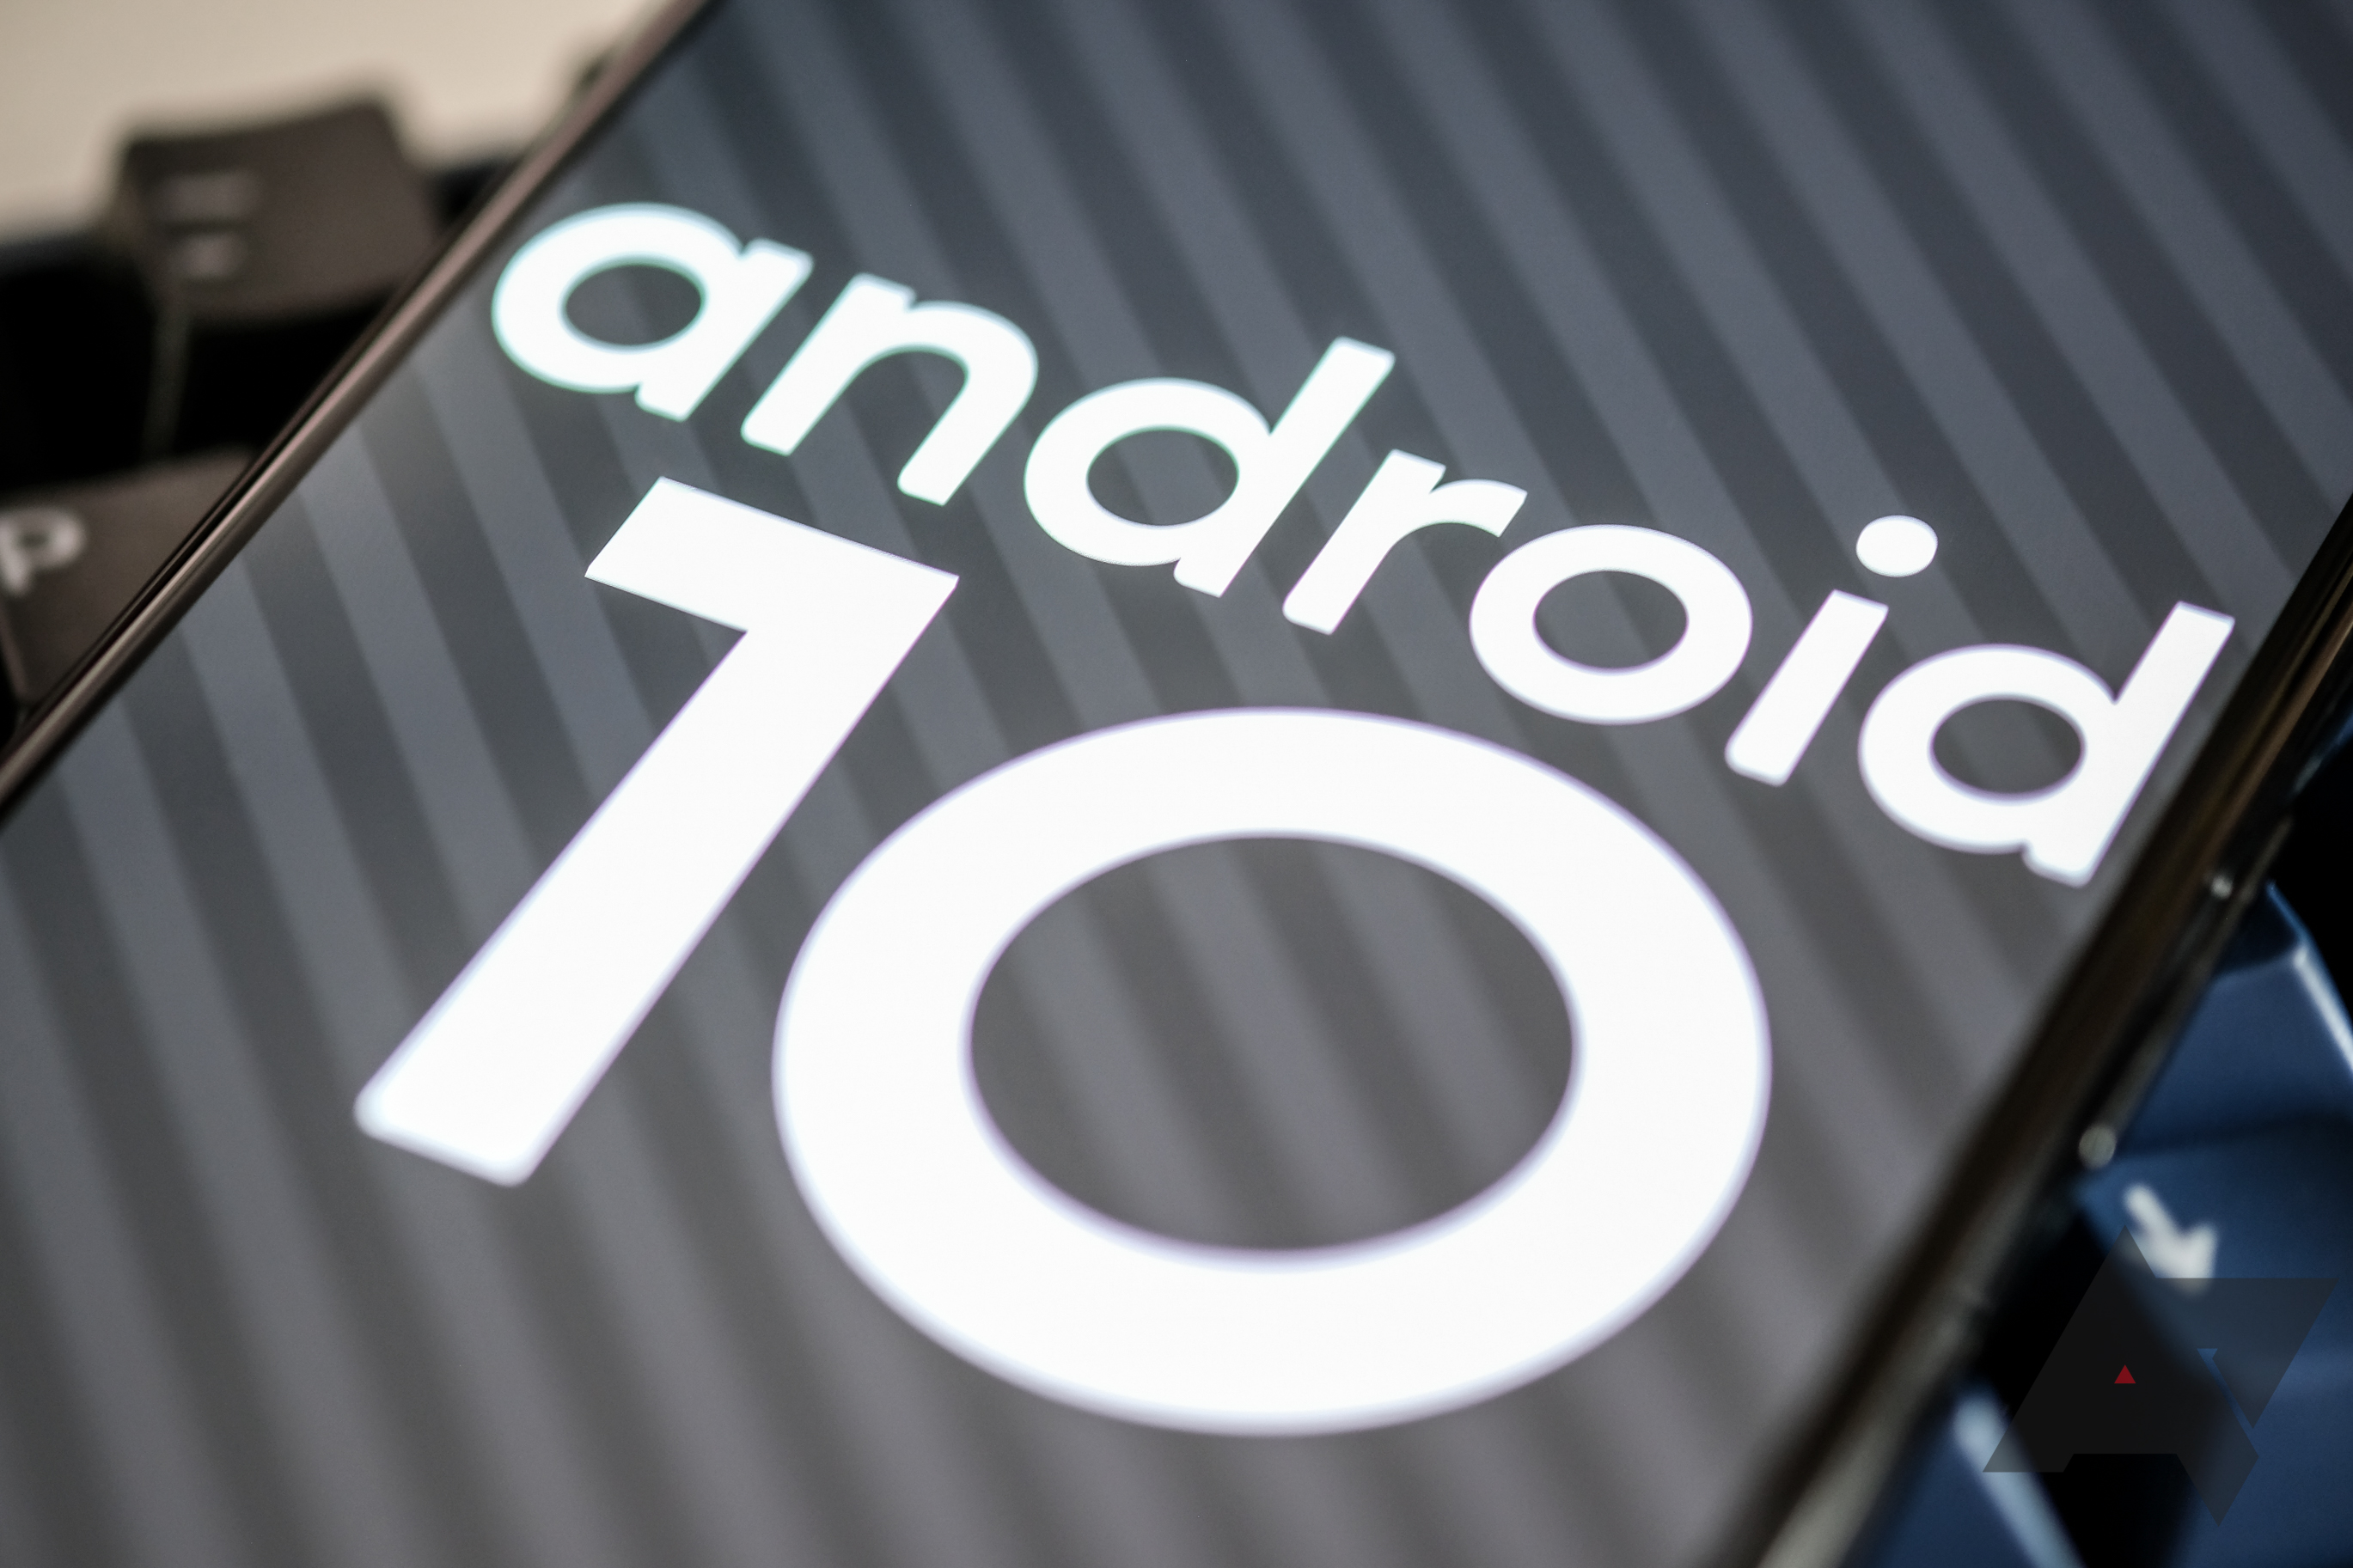 Android 10 no longer uses Chrome app to render in-app web content